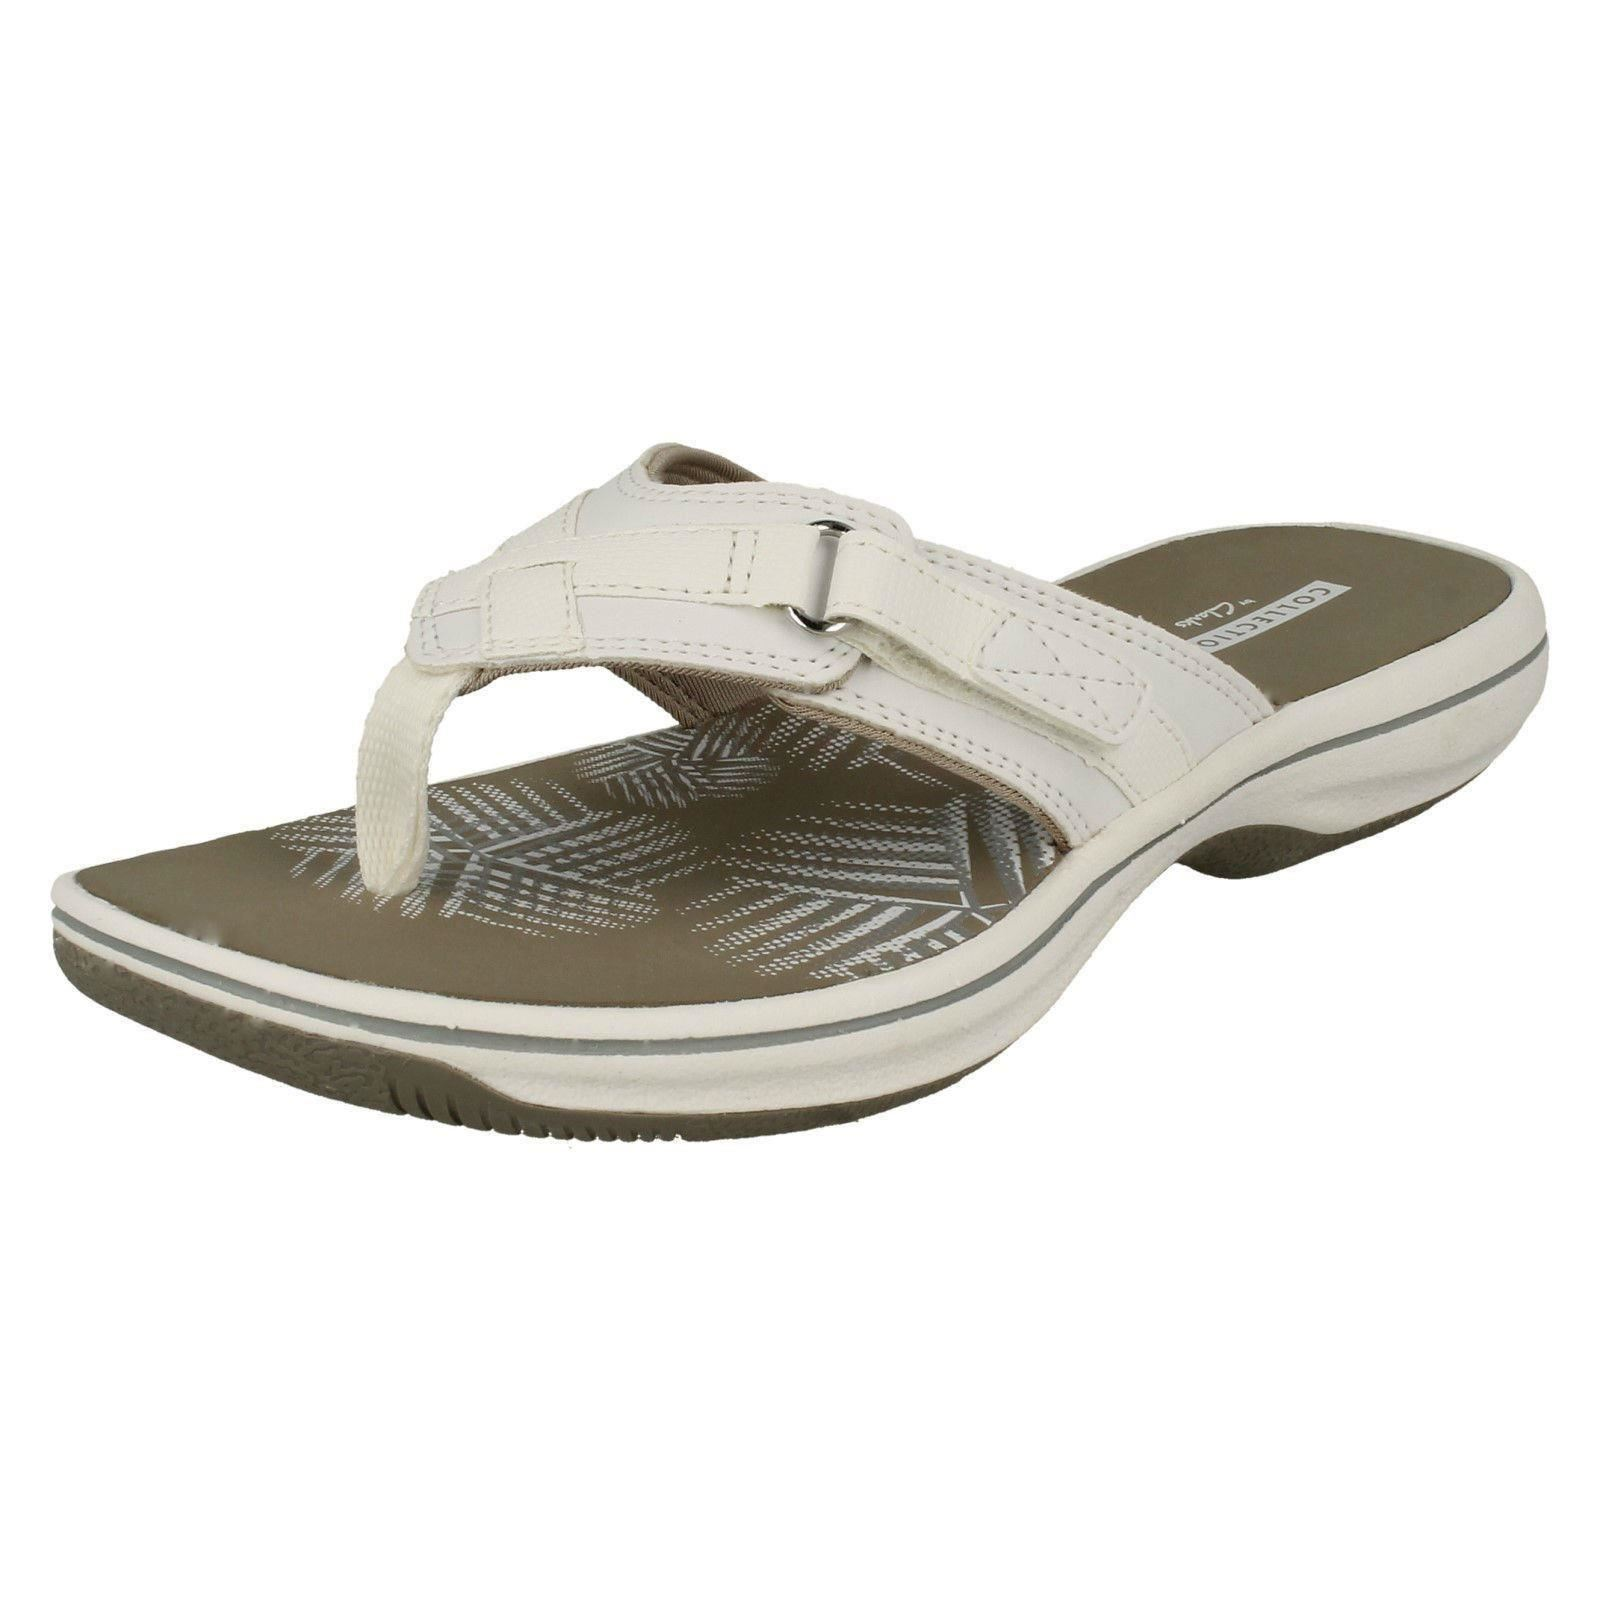 cc668aa1057 Clarks Brinkley Sea - White Synthetic (textile) Womens Sandals 7 UK ...